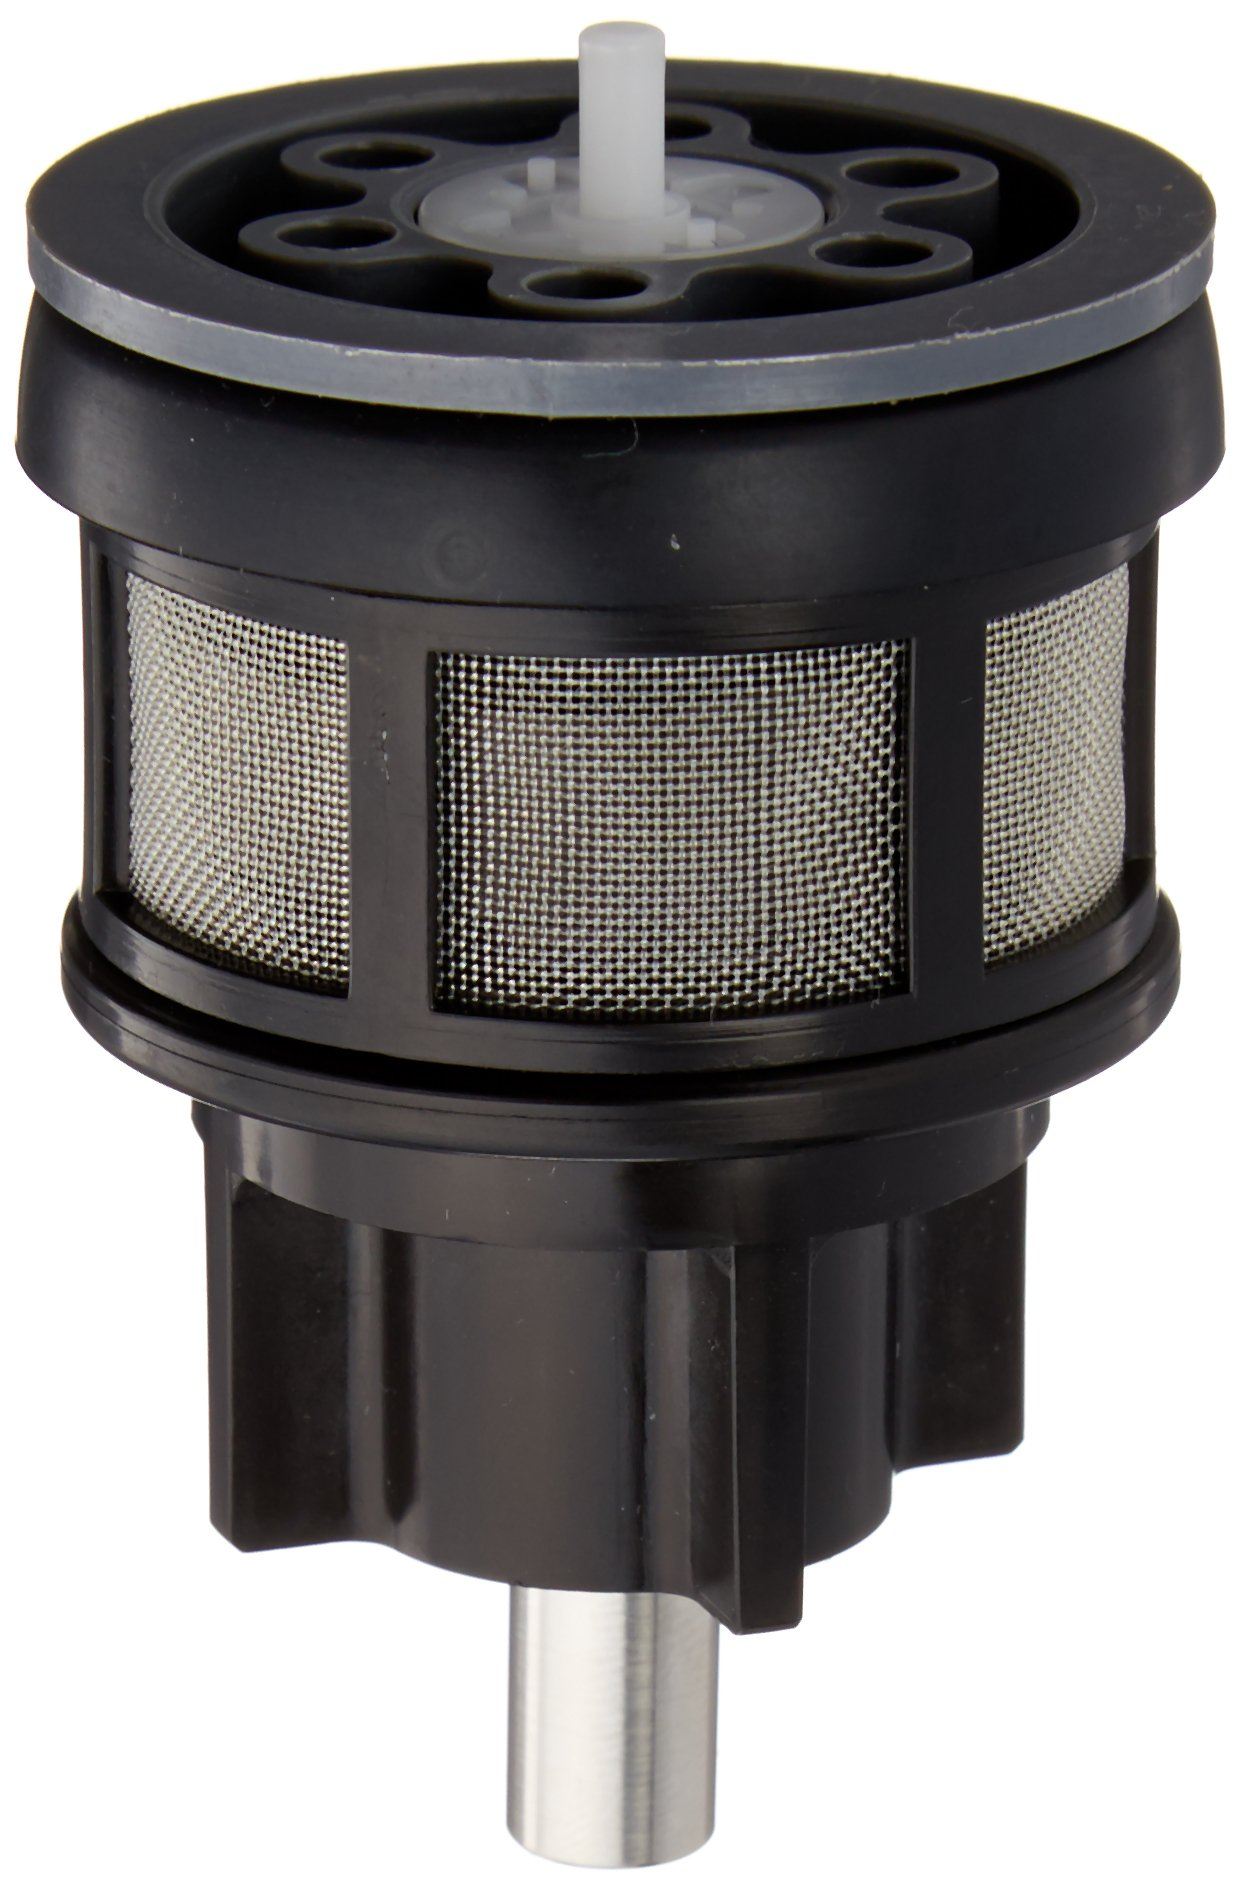 Toto TH323V101R Piston Assembly for Toilet 3.5 GPF Flushometer by TOTO